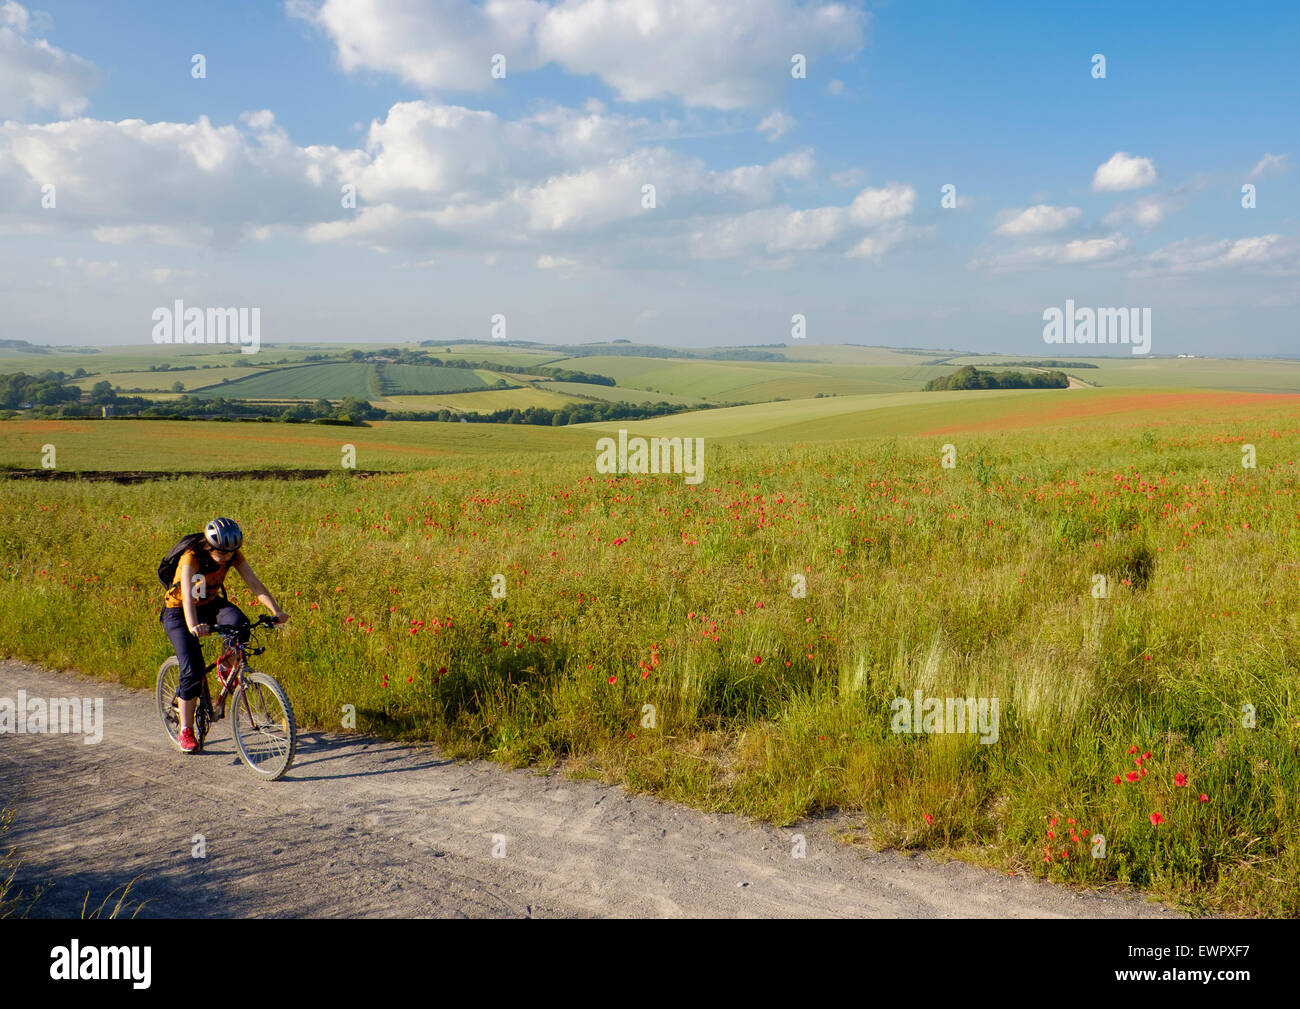 19 June 2015 - Falmer, near Brighton, UK : A cyclist on the new cycle track between Falmer and Woodingdean, segregated - Stock Image